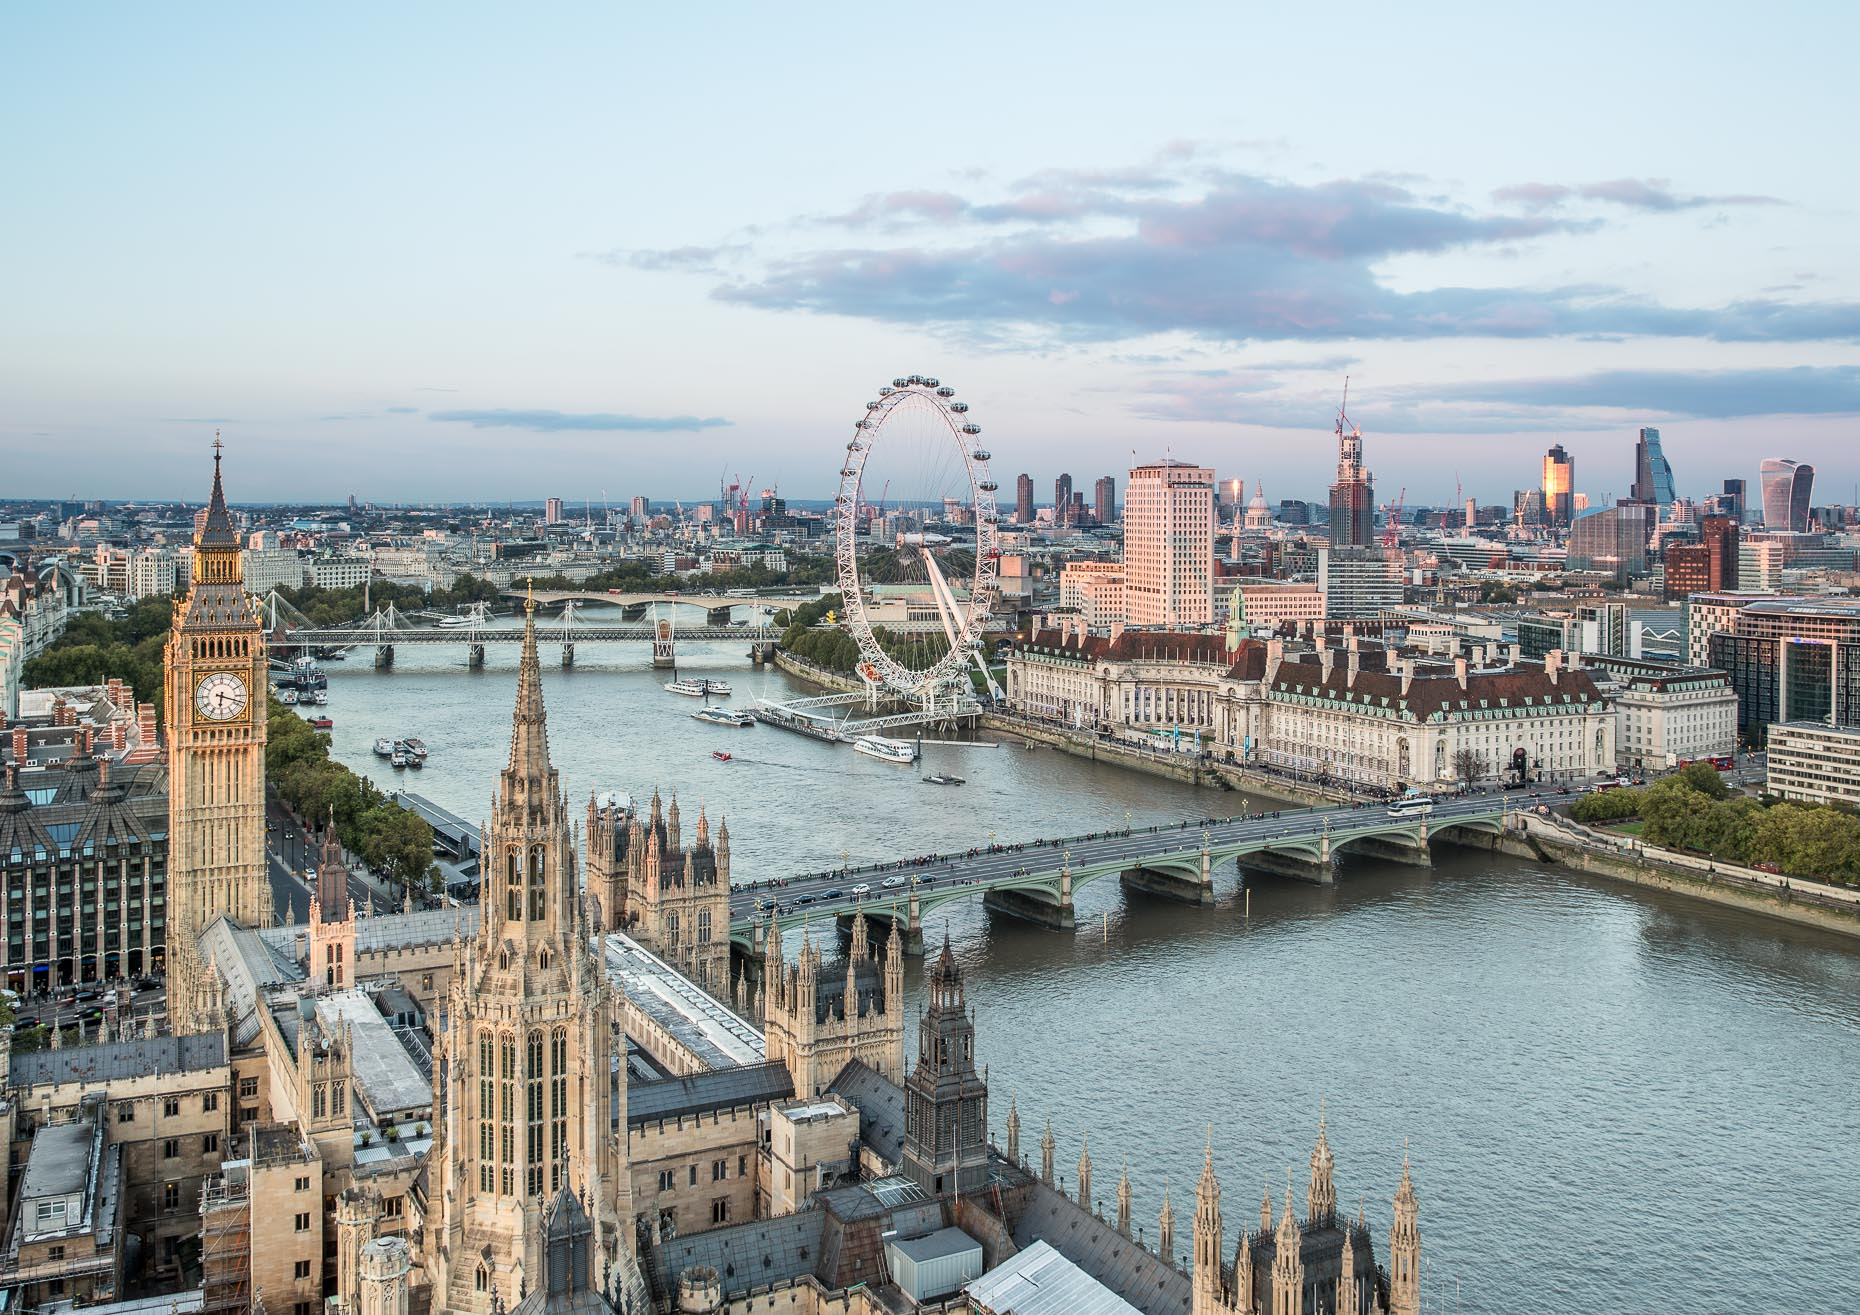 51_JL_201410_Visit_London_1731-Edit